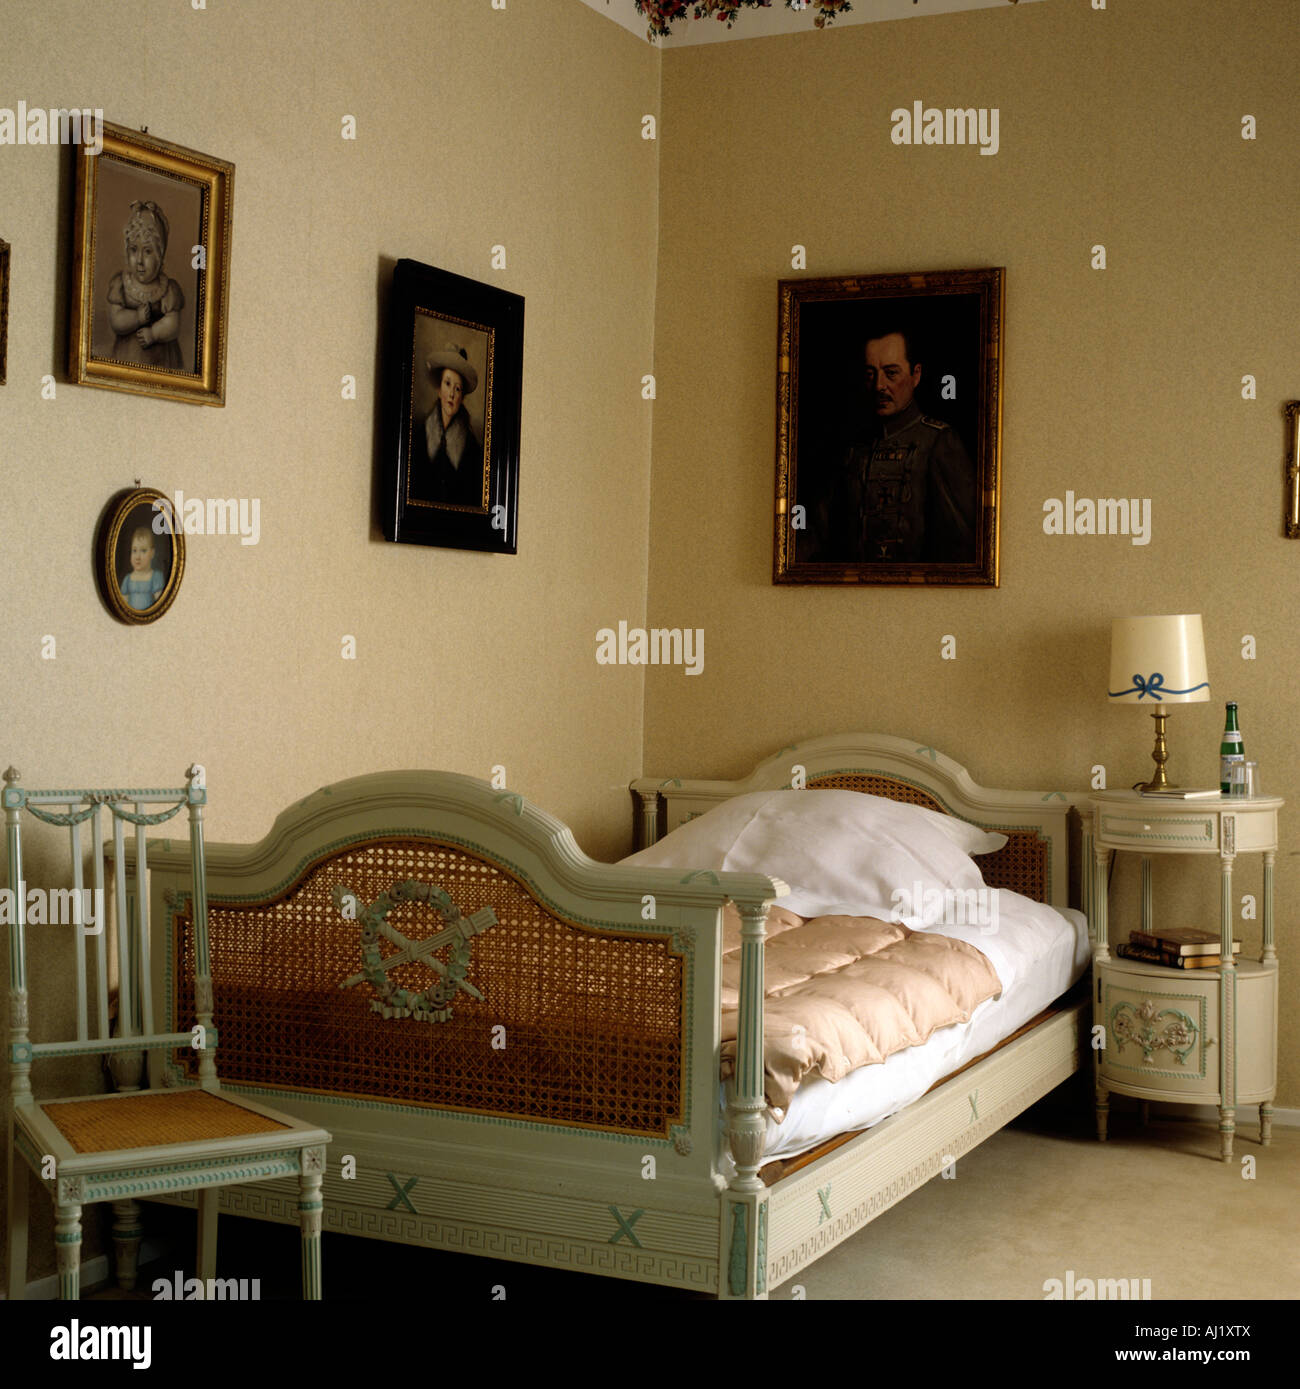 Bedroom With Antique Wooden Bed Featuring Woven Rattan Headboard In Stock Photo Alamy